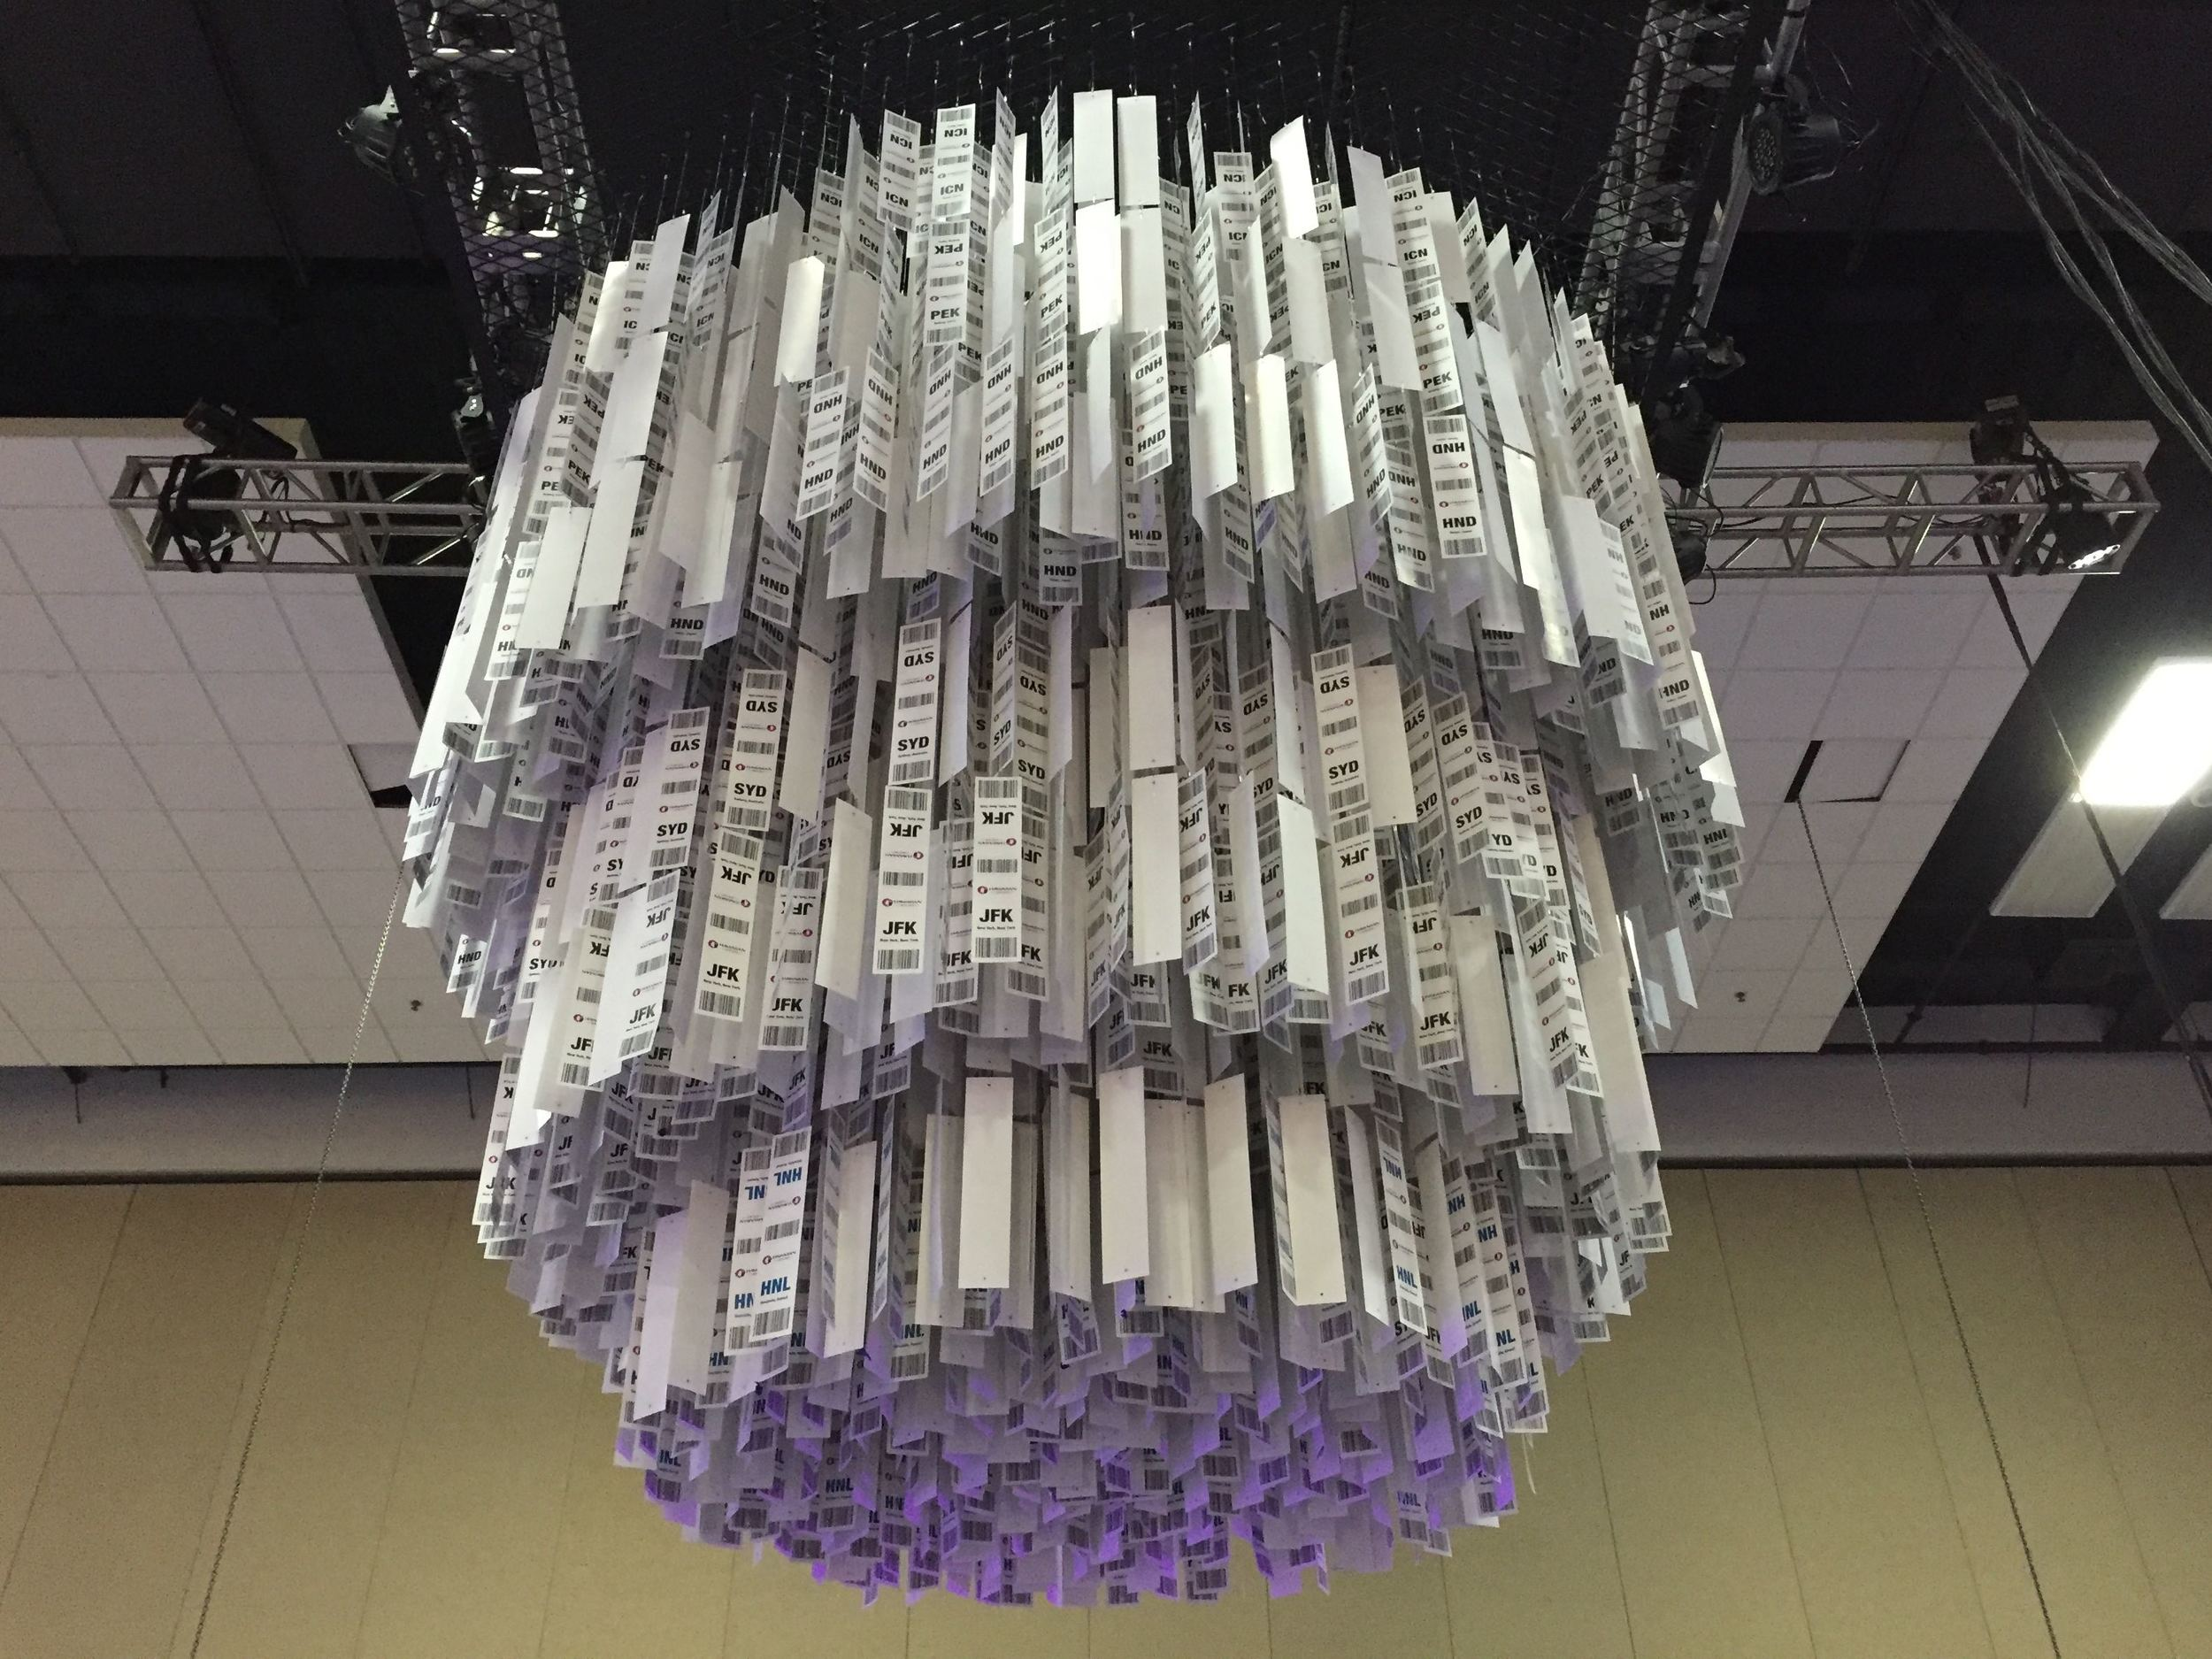 As a main focal element, the chandelier was suspended 16.5' in the air.